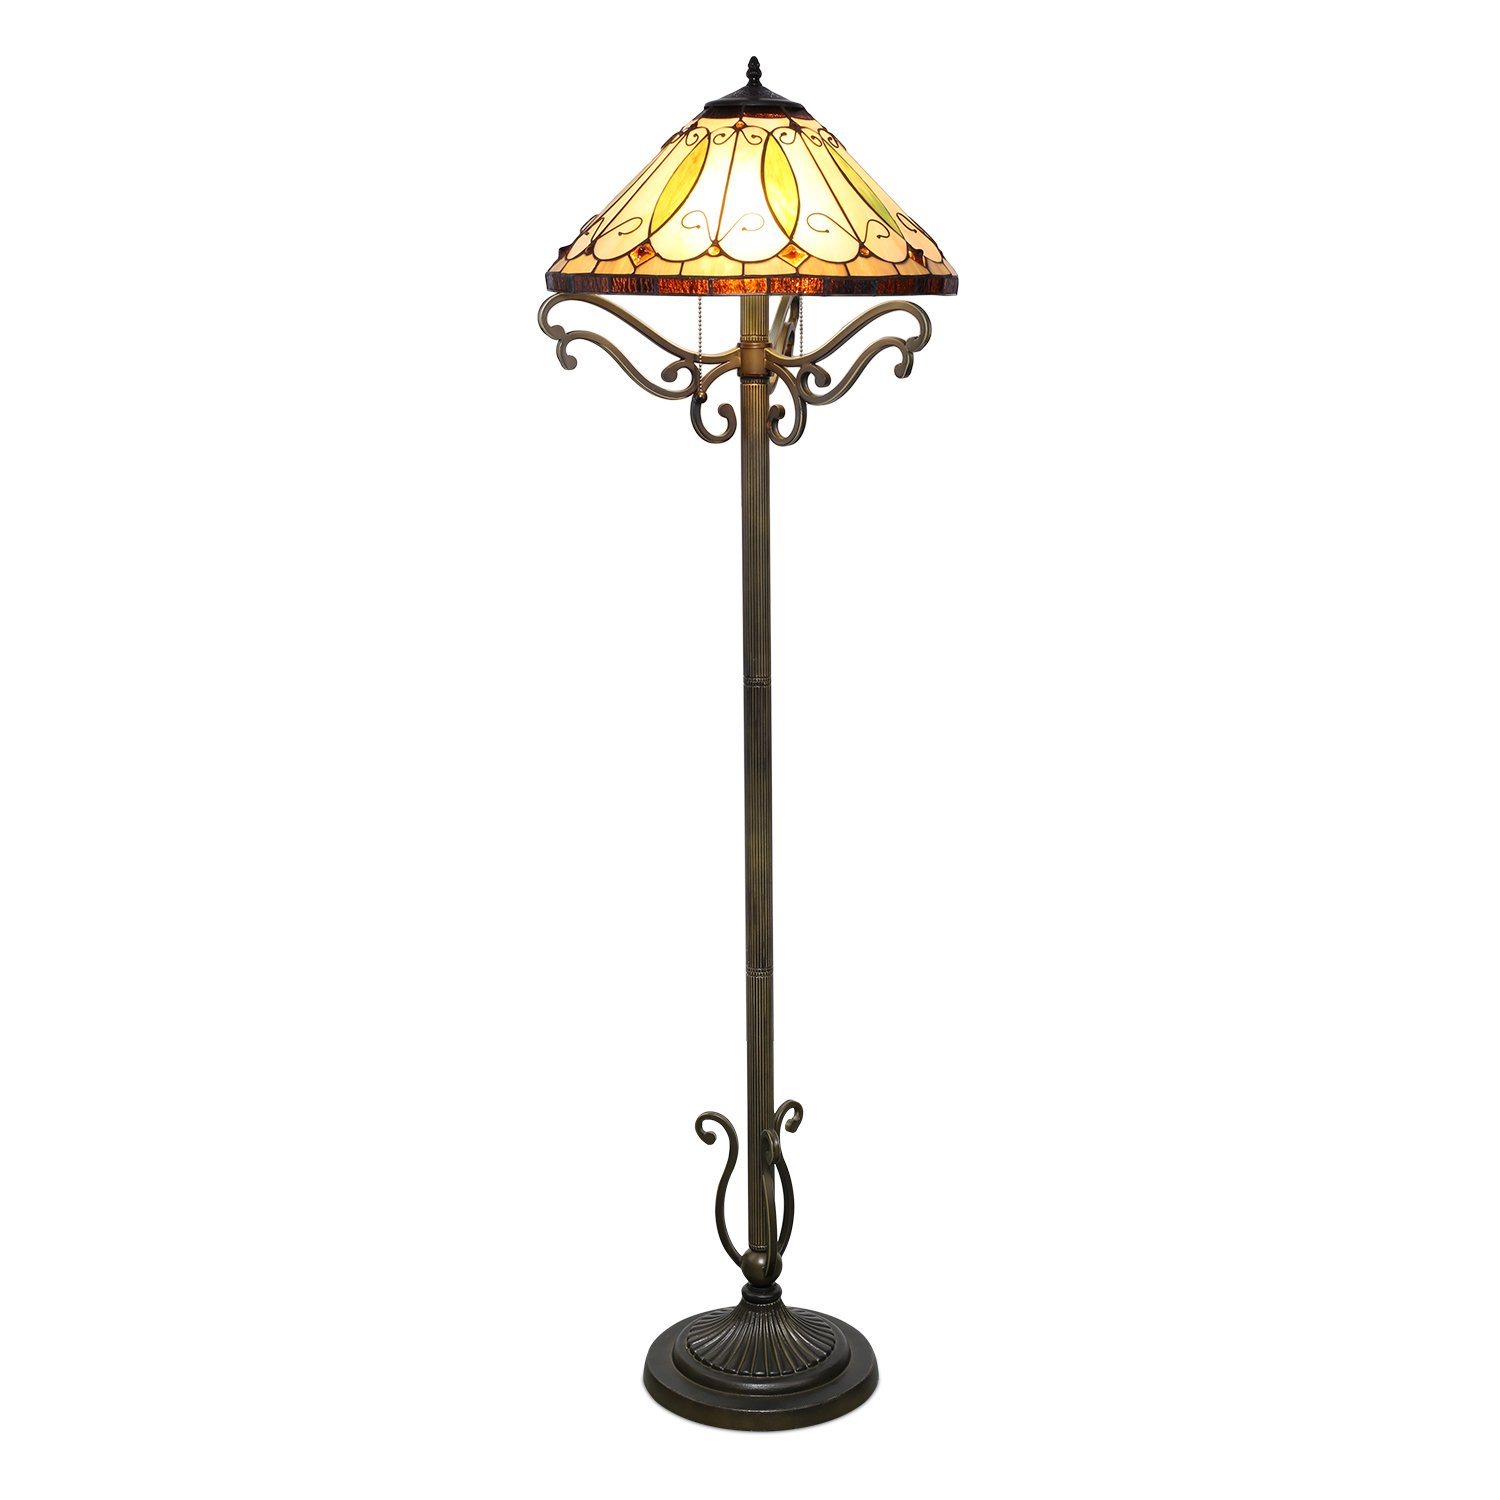 1908 Studios Arroyo Tiffany Floor Lamp